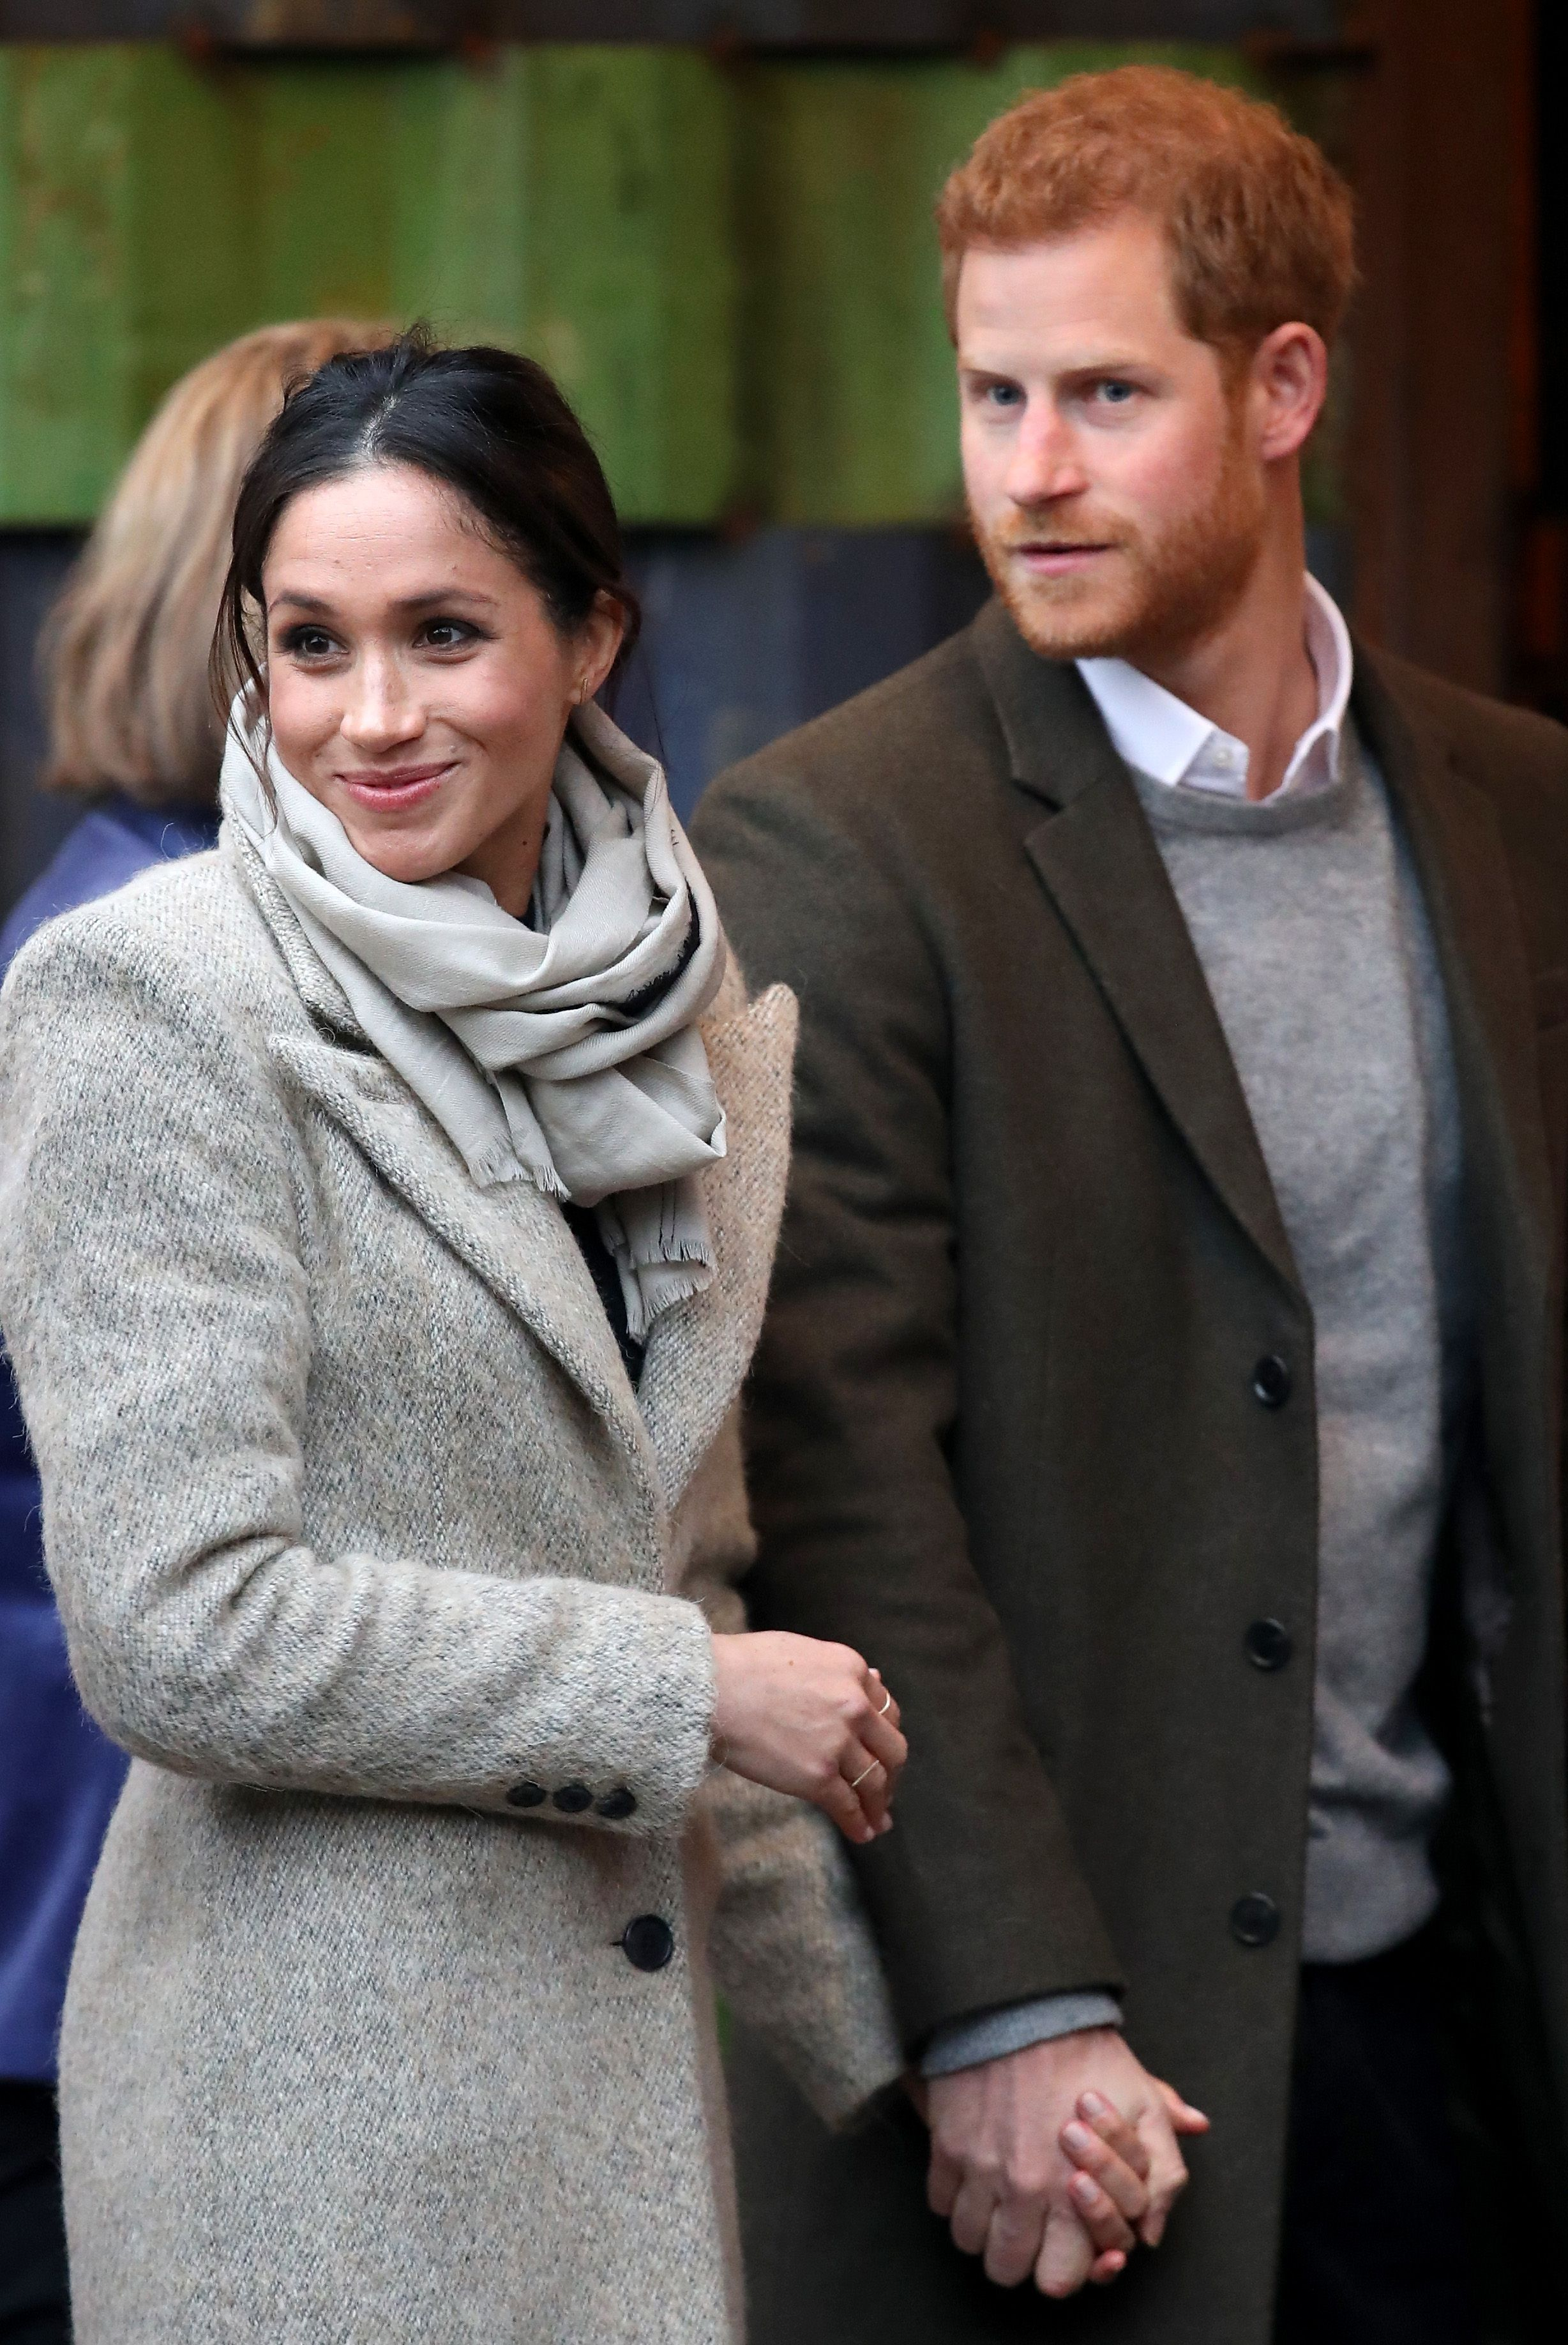 Prince Harry Was Photographed Arriving in Canada to Reunite With Meghan Markle and Archie